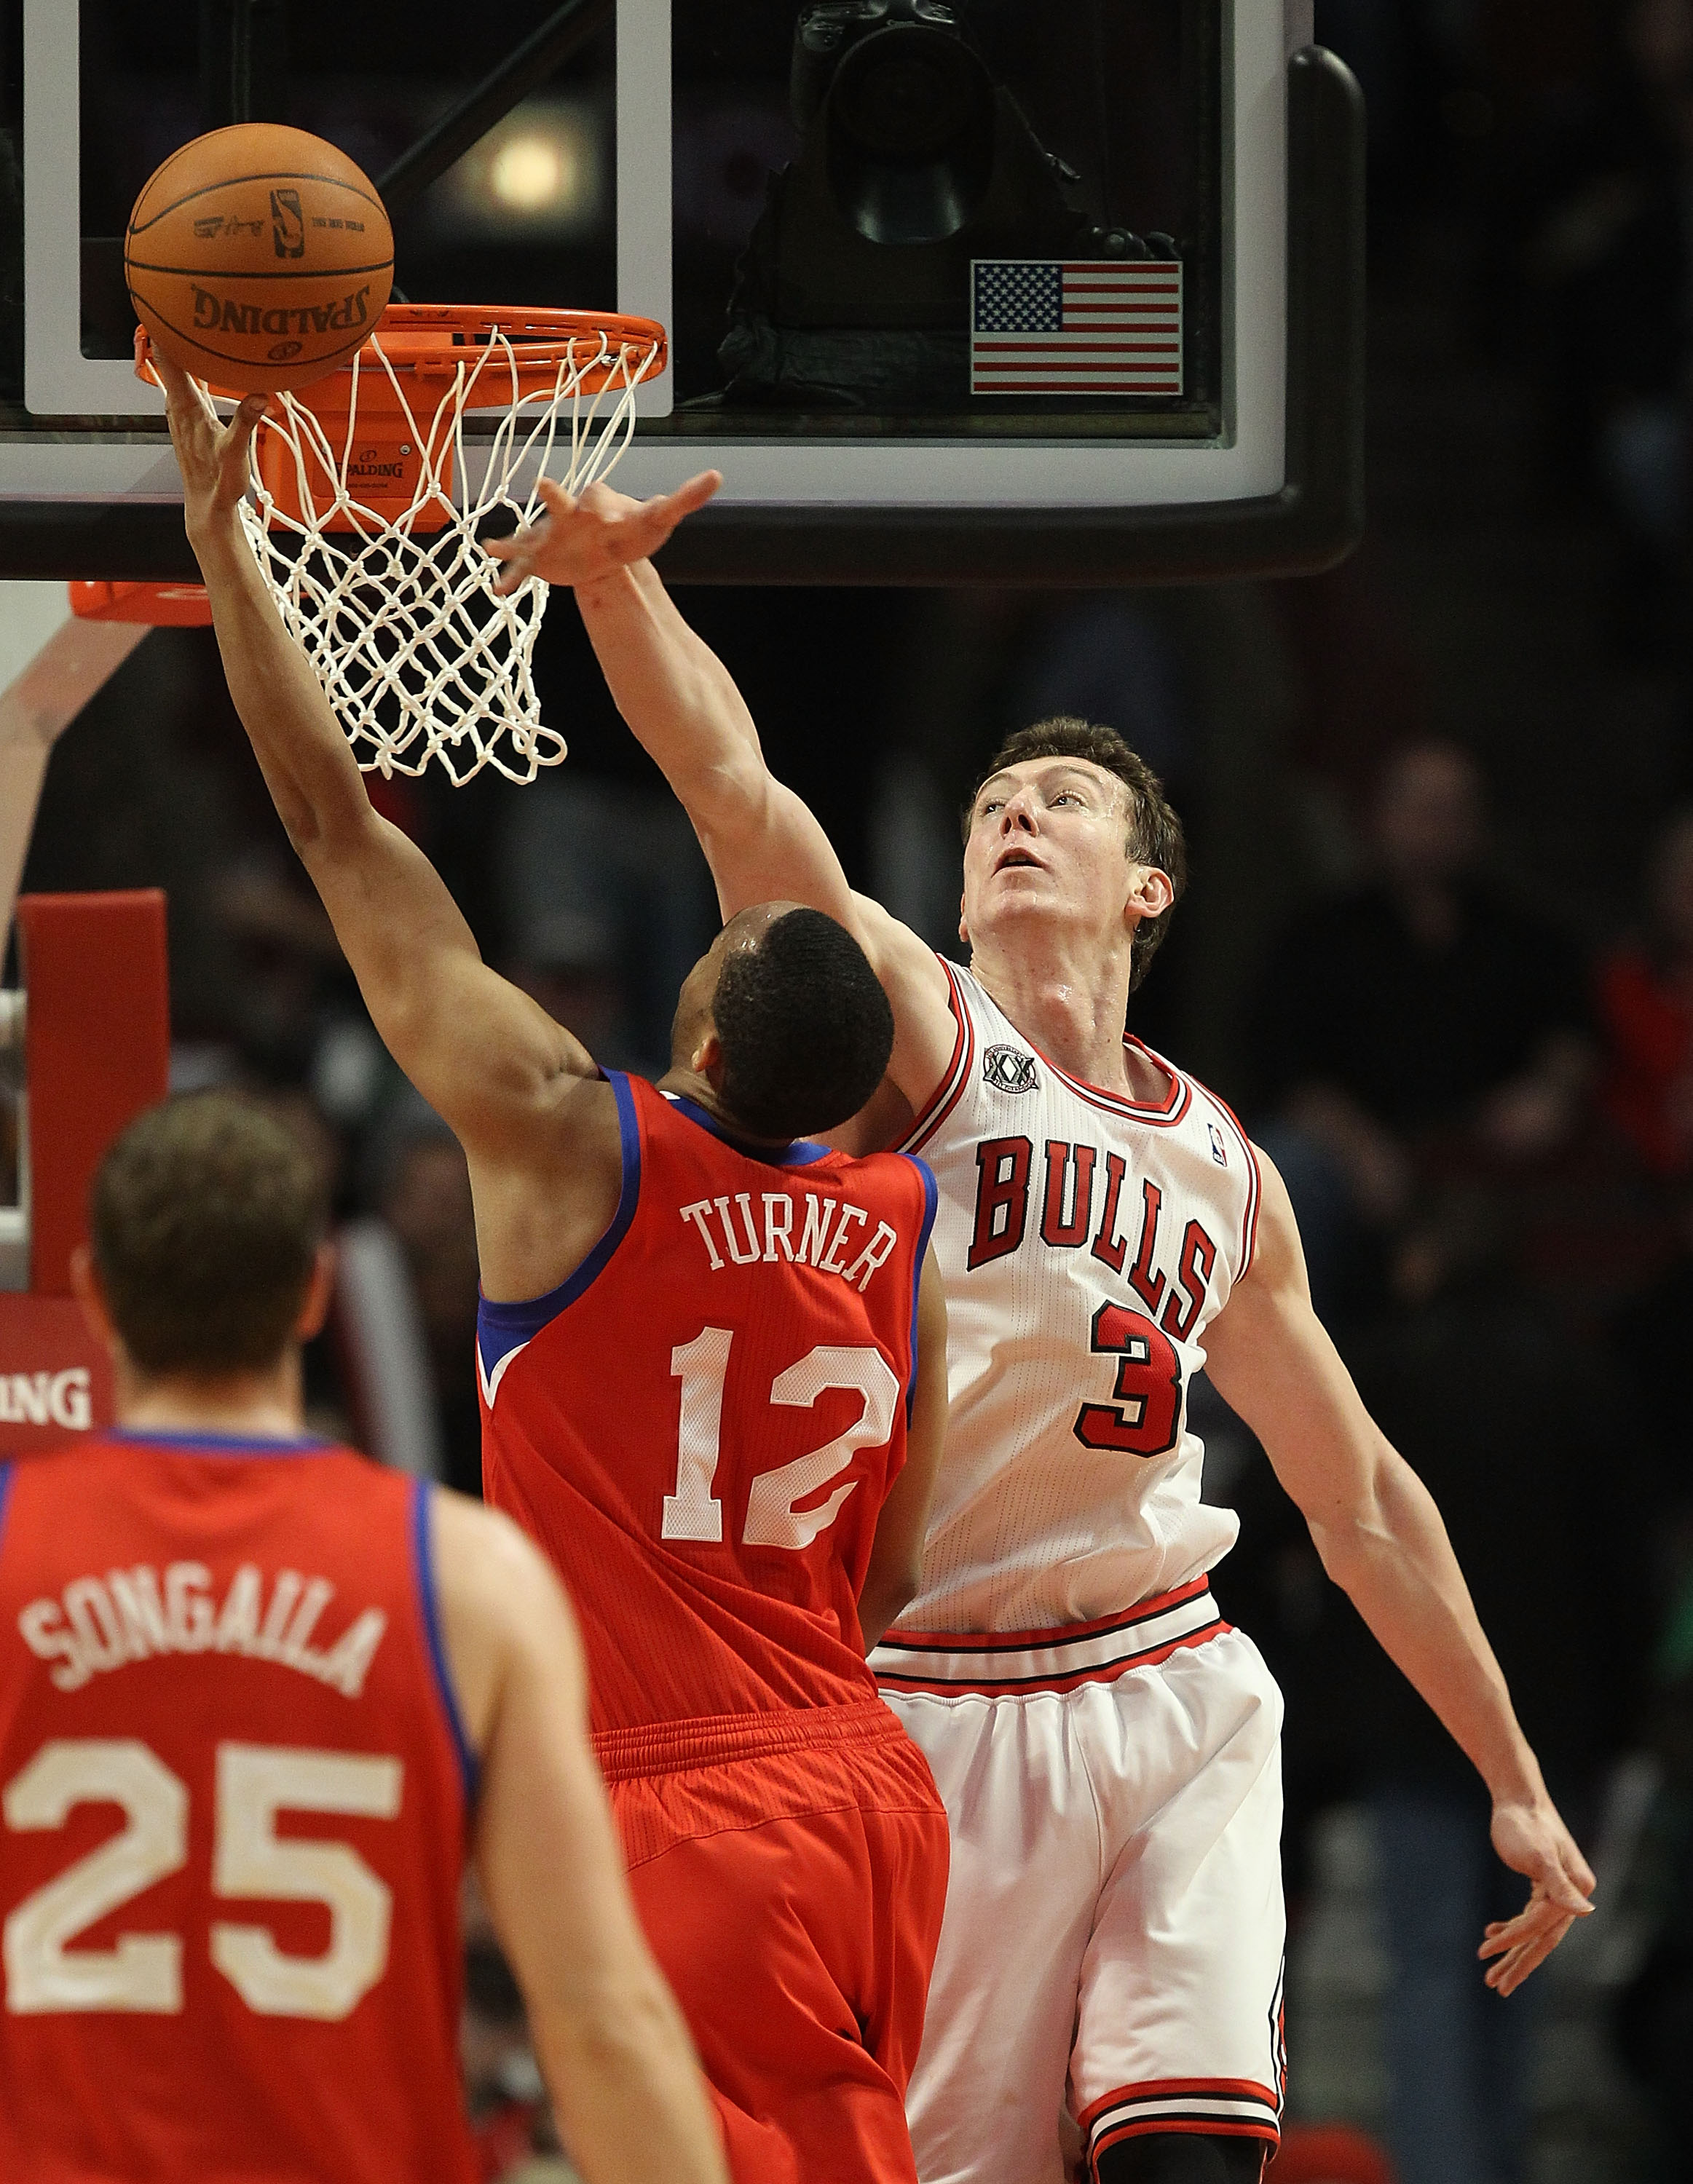 CHICAGO, IL - DECEMBER 21: Omer Asik #3 of the Chicago Bulls tries to block a shot by Evan Turner #12 of the Philadelphia 76ers at the United Center on December 21, 2010 in Chicago, Illinois. The Bulls defeated the 76ers 121-76. NOTE TO USER: User express